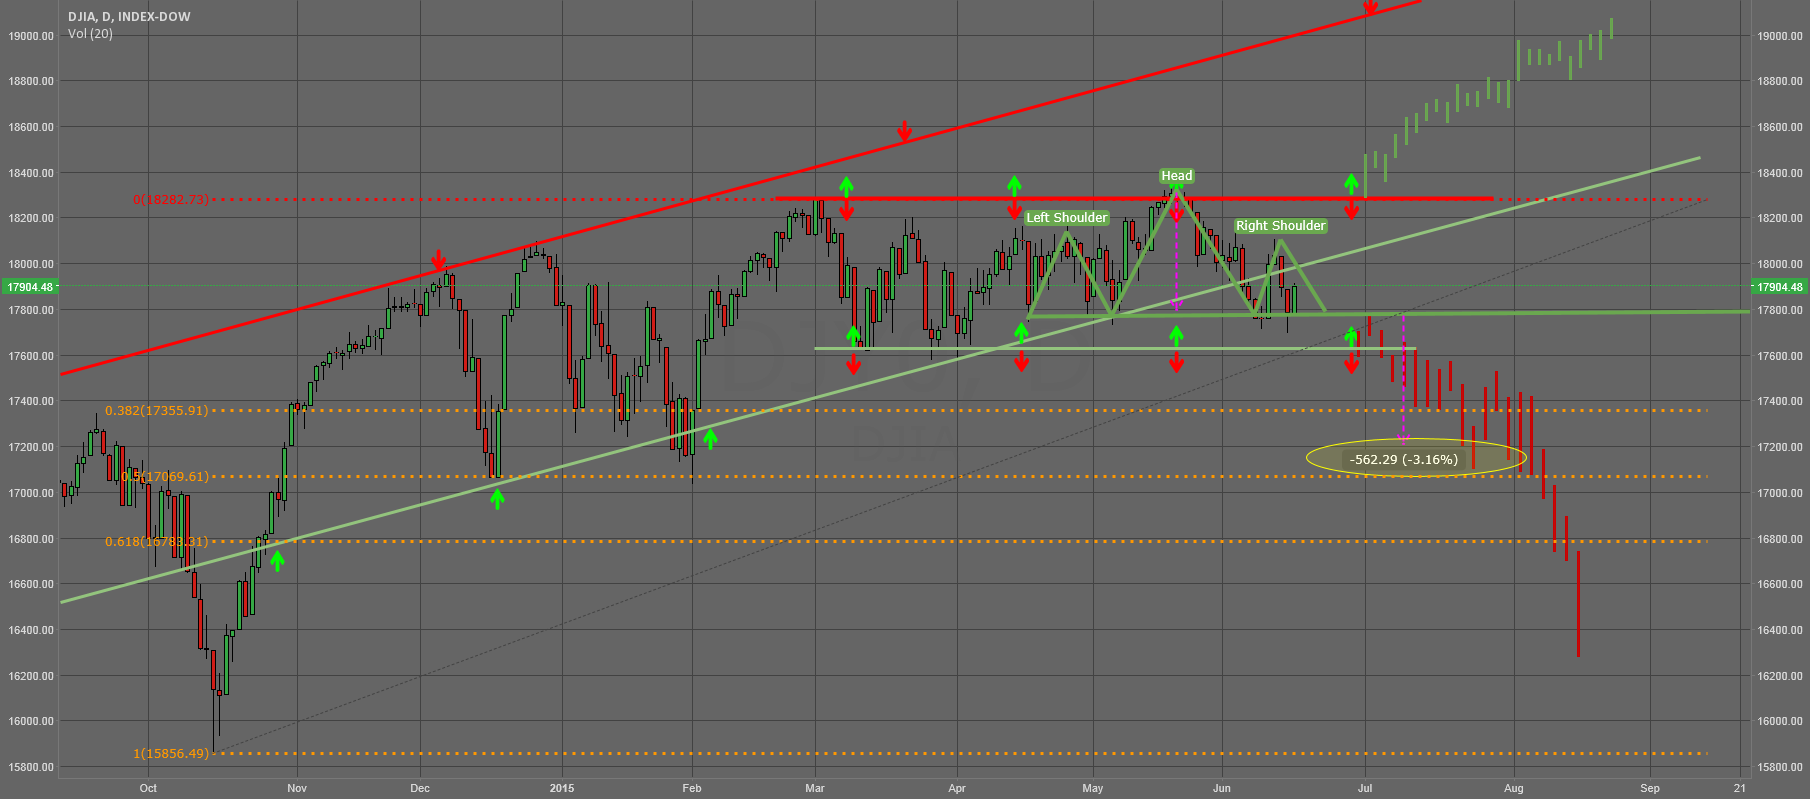 DJIA caught in the Box - forming a bearish Head & Shoulder???